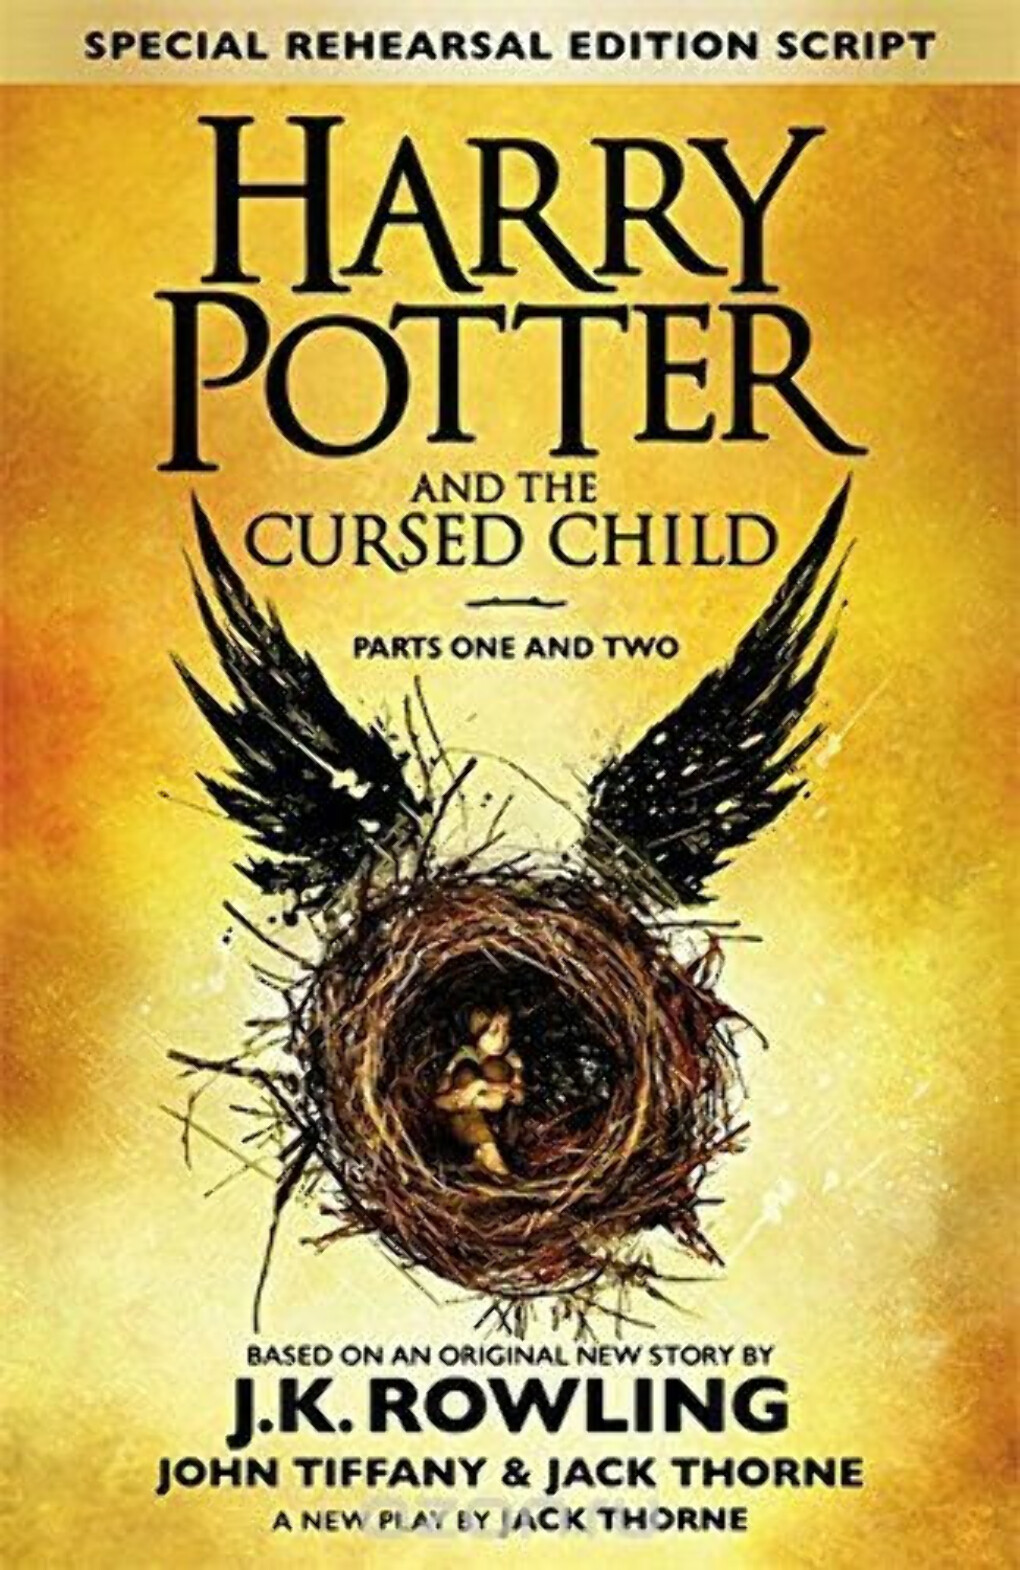 Harry Potter and the Cursed Child: Parts 1 & 2: The Official Script Book of the Original West End Production